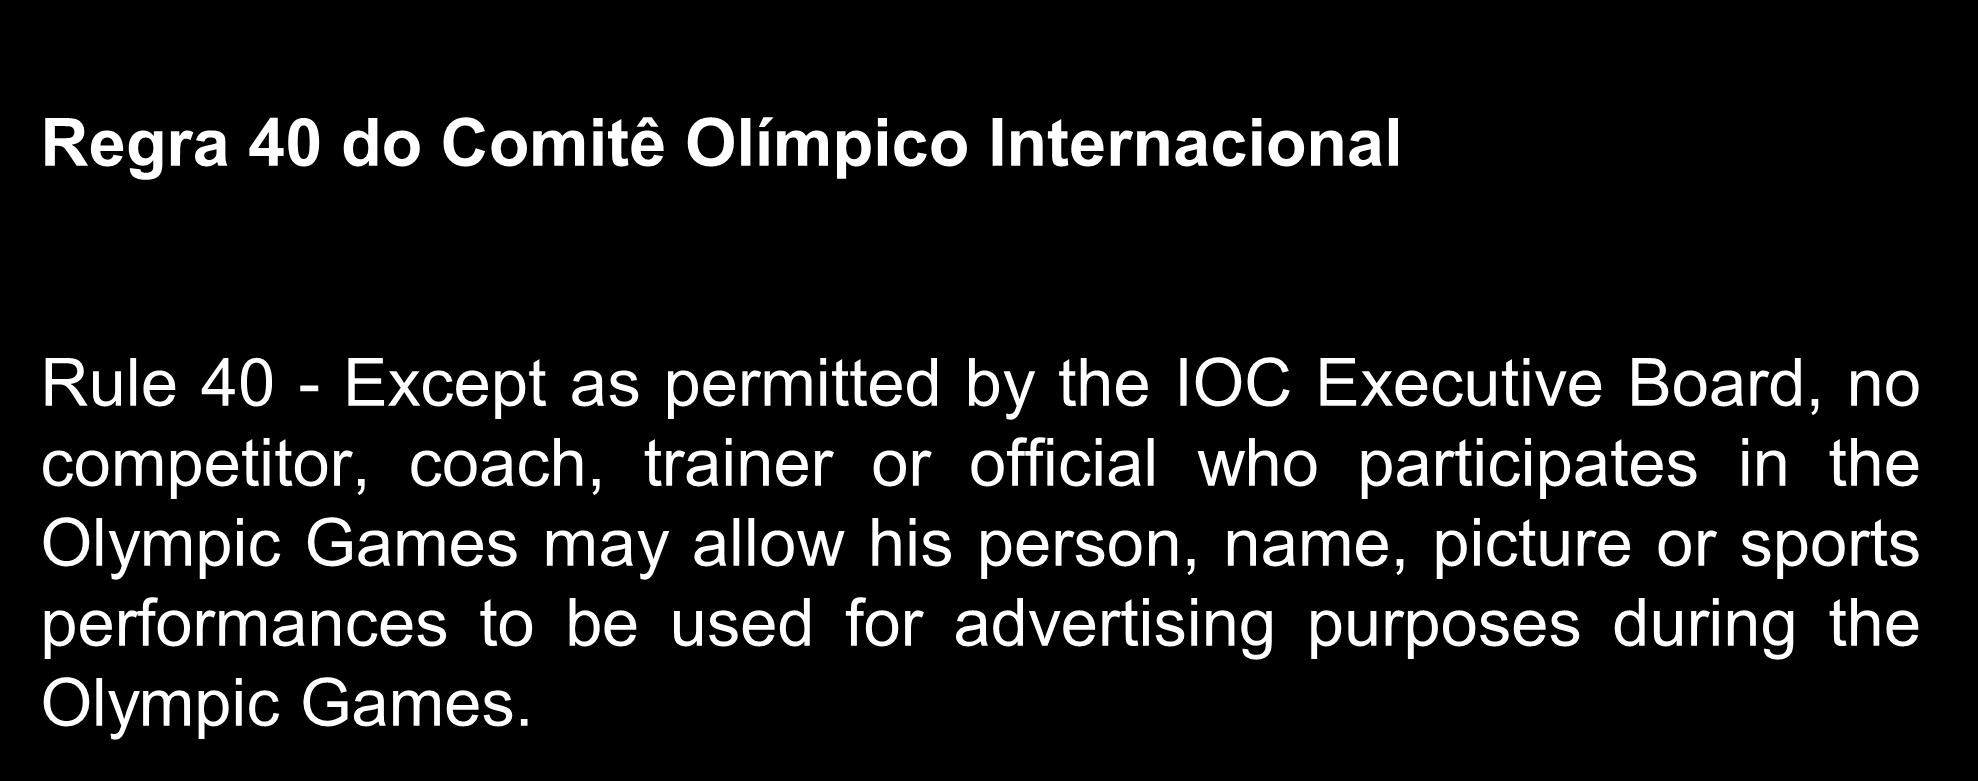 Jogos Olímpicos e a Regra 40 Regra 40 do Comitê Olímpico Internacional Rule 40 - Except as permitted by the IOC Executive Board, no competitor, coach, trainer or